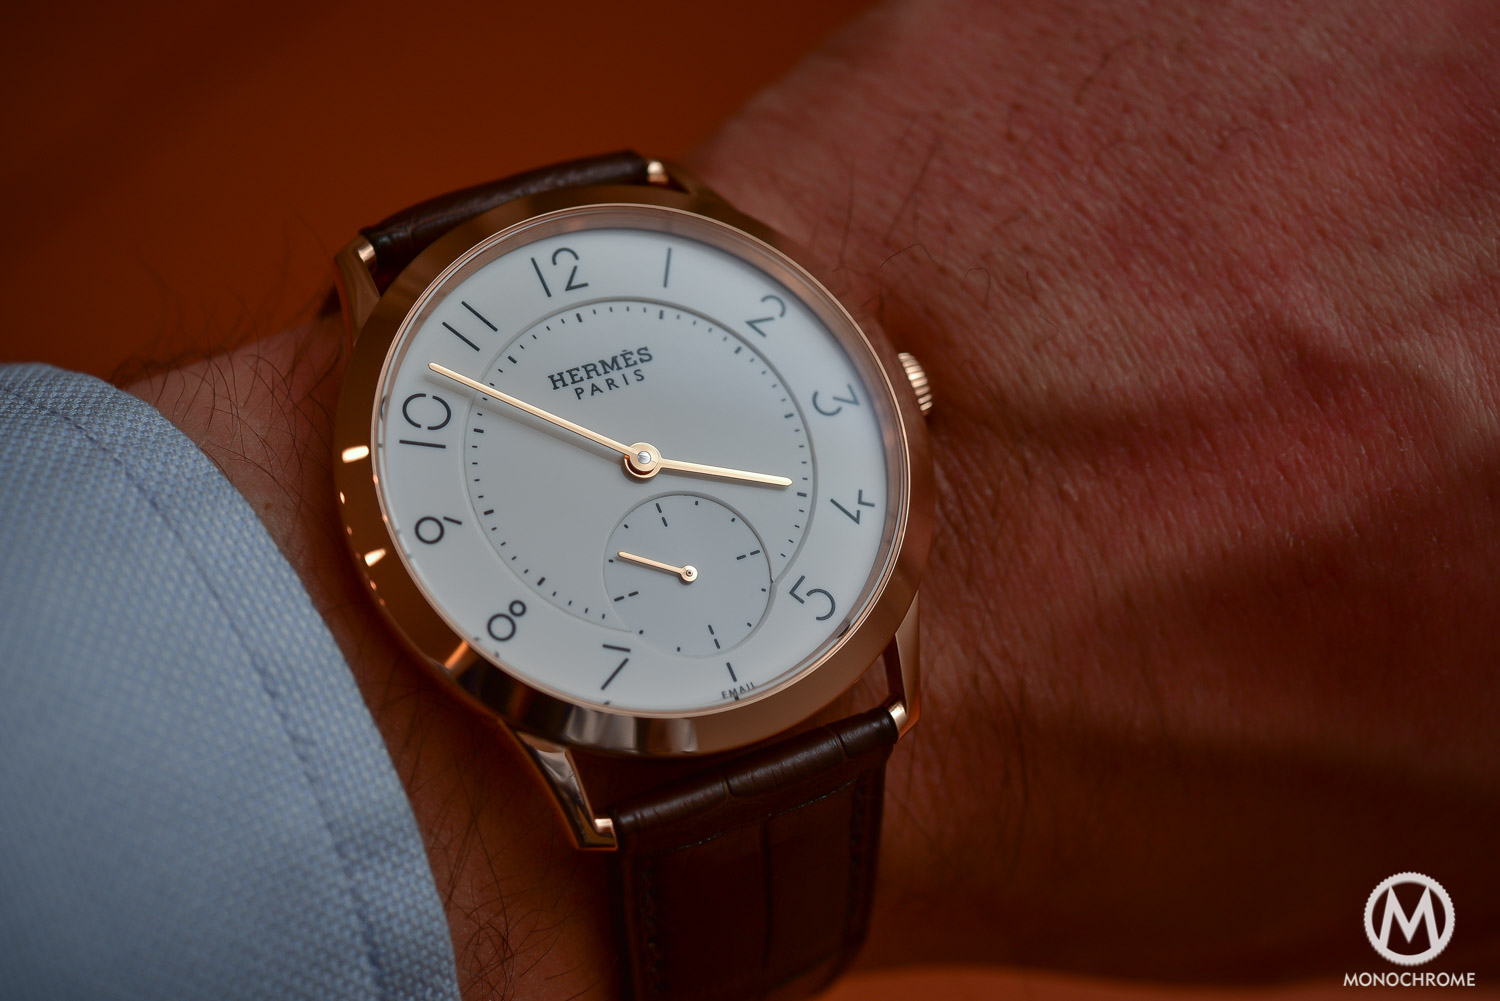 Hands-on with the Slim d'Hermès Email Grand Feu